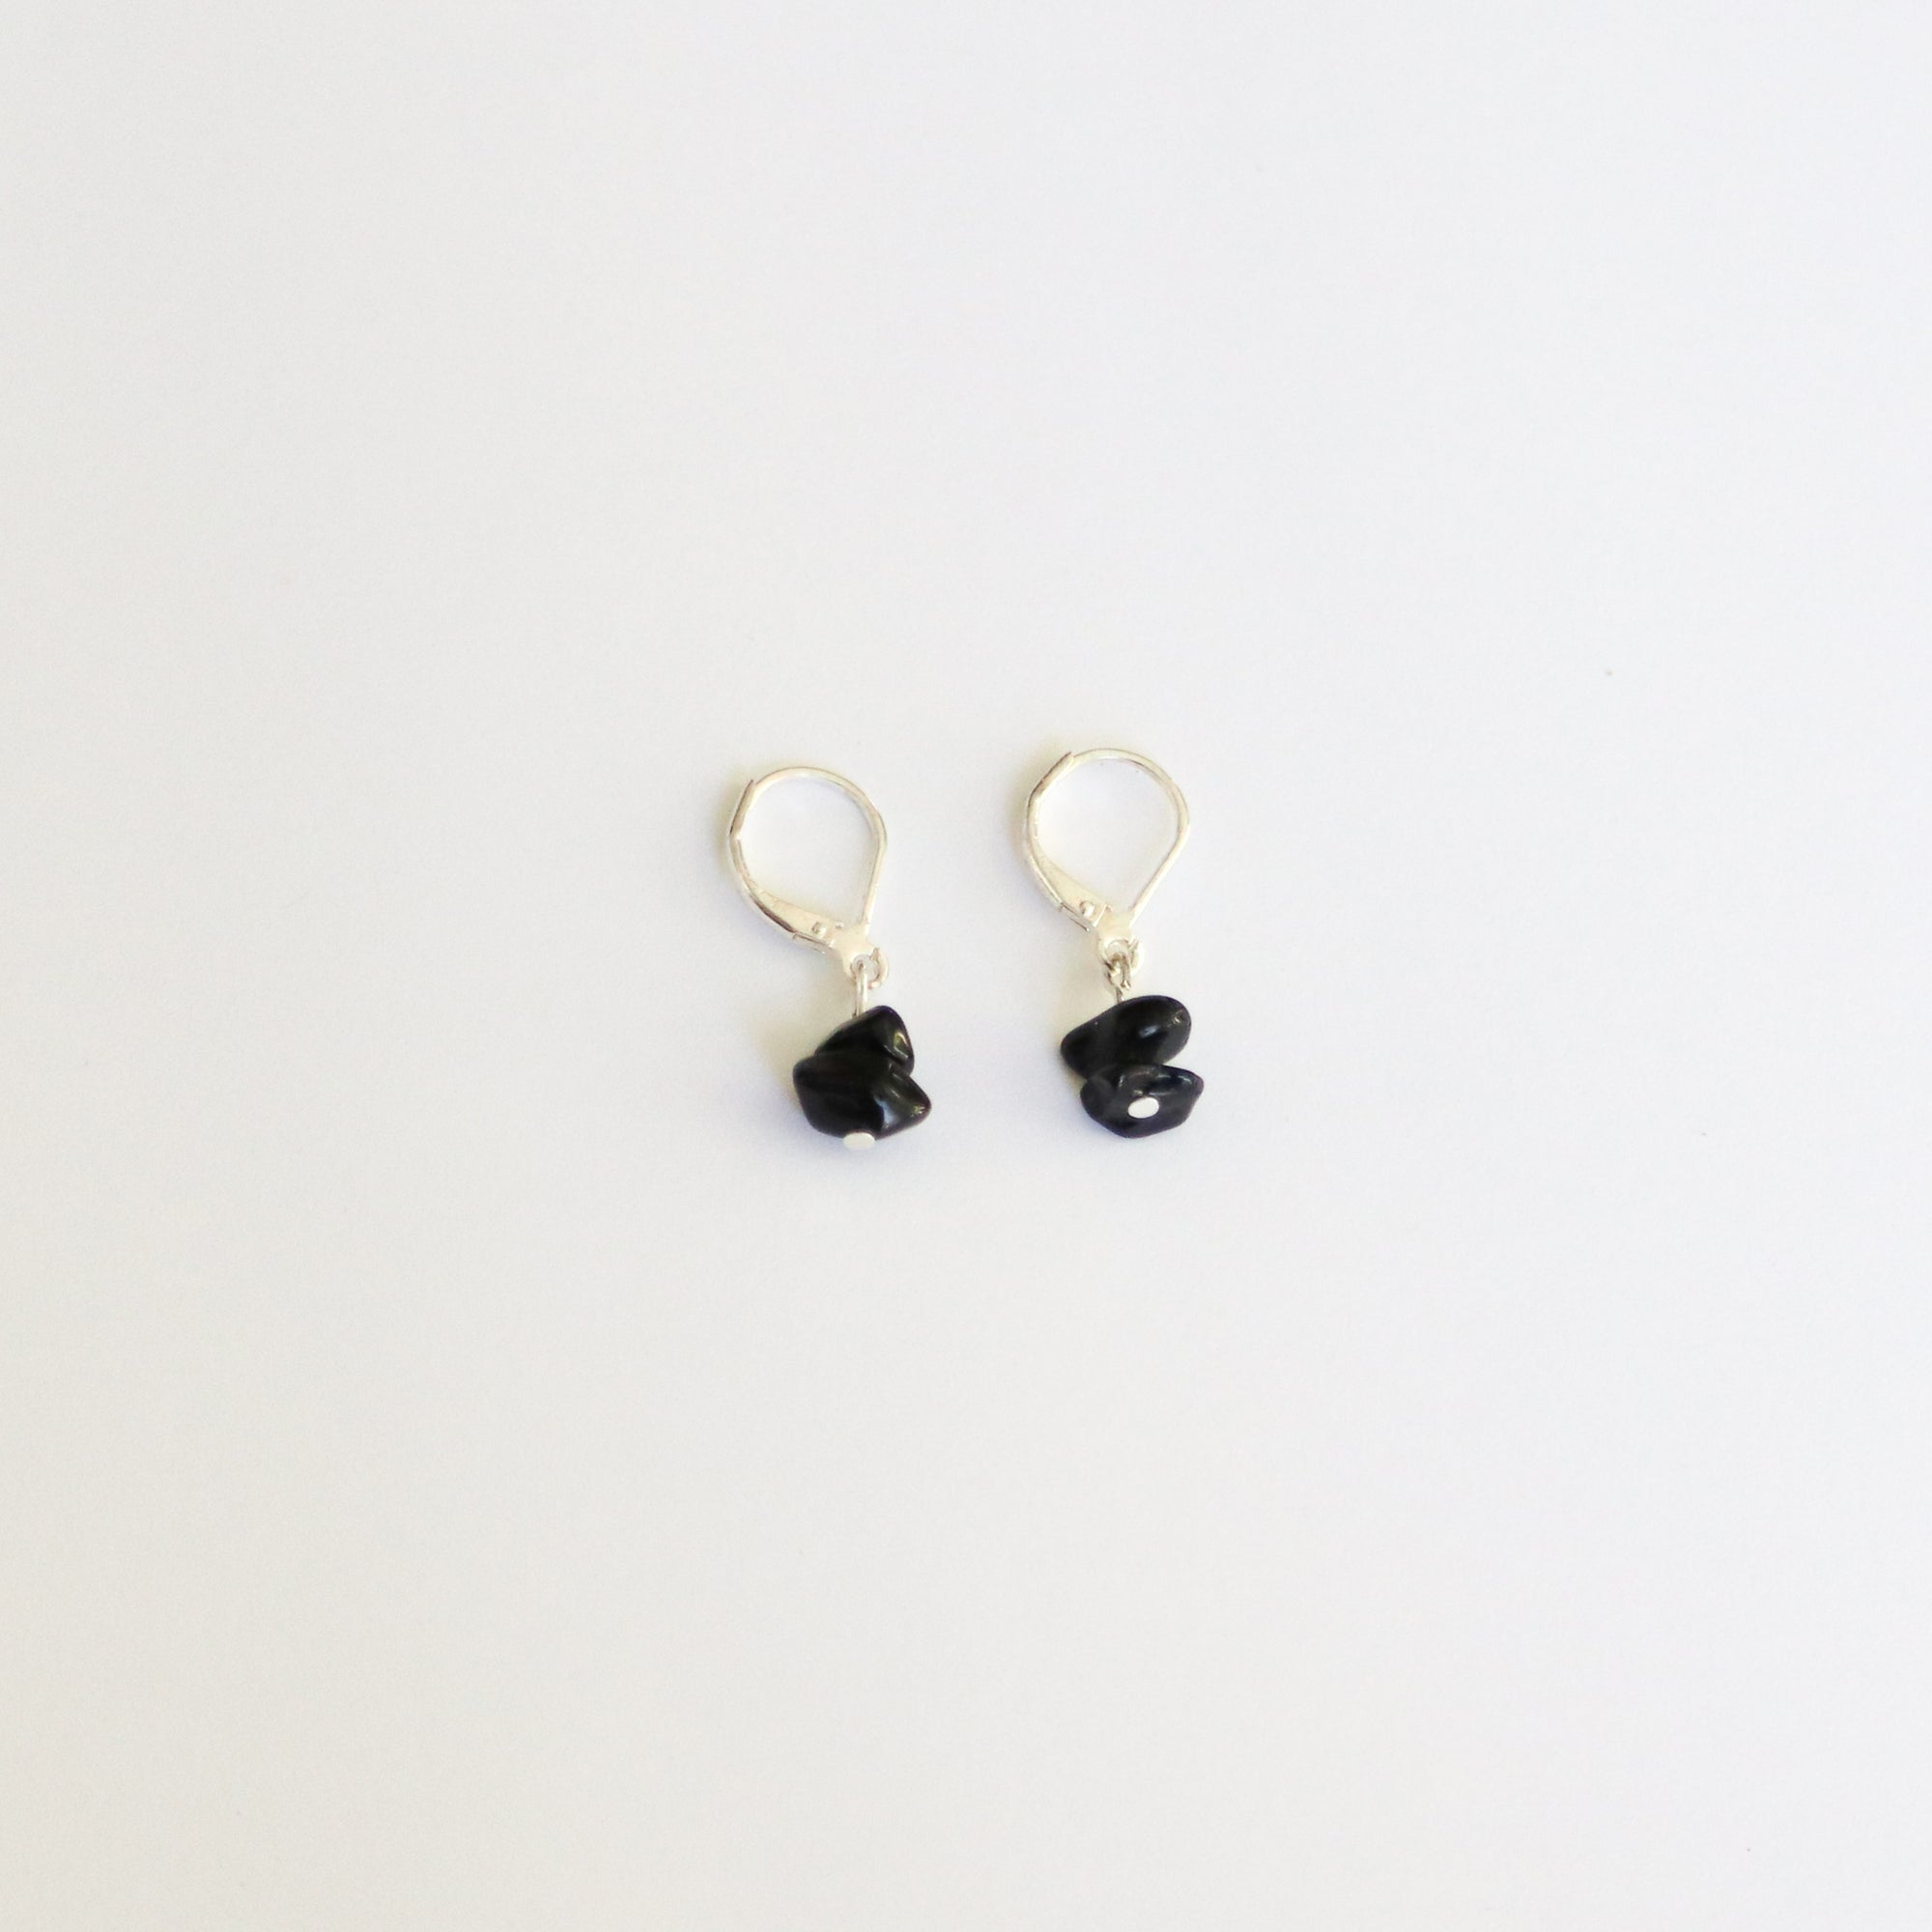 Obsidian Sterling Silver Hoop Earrings